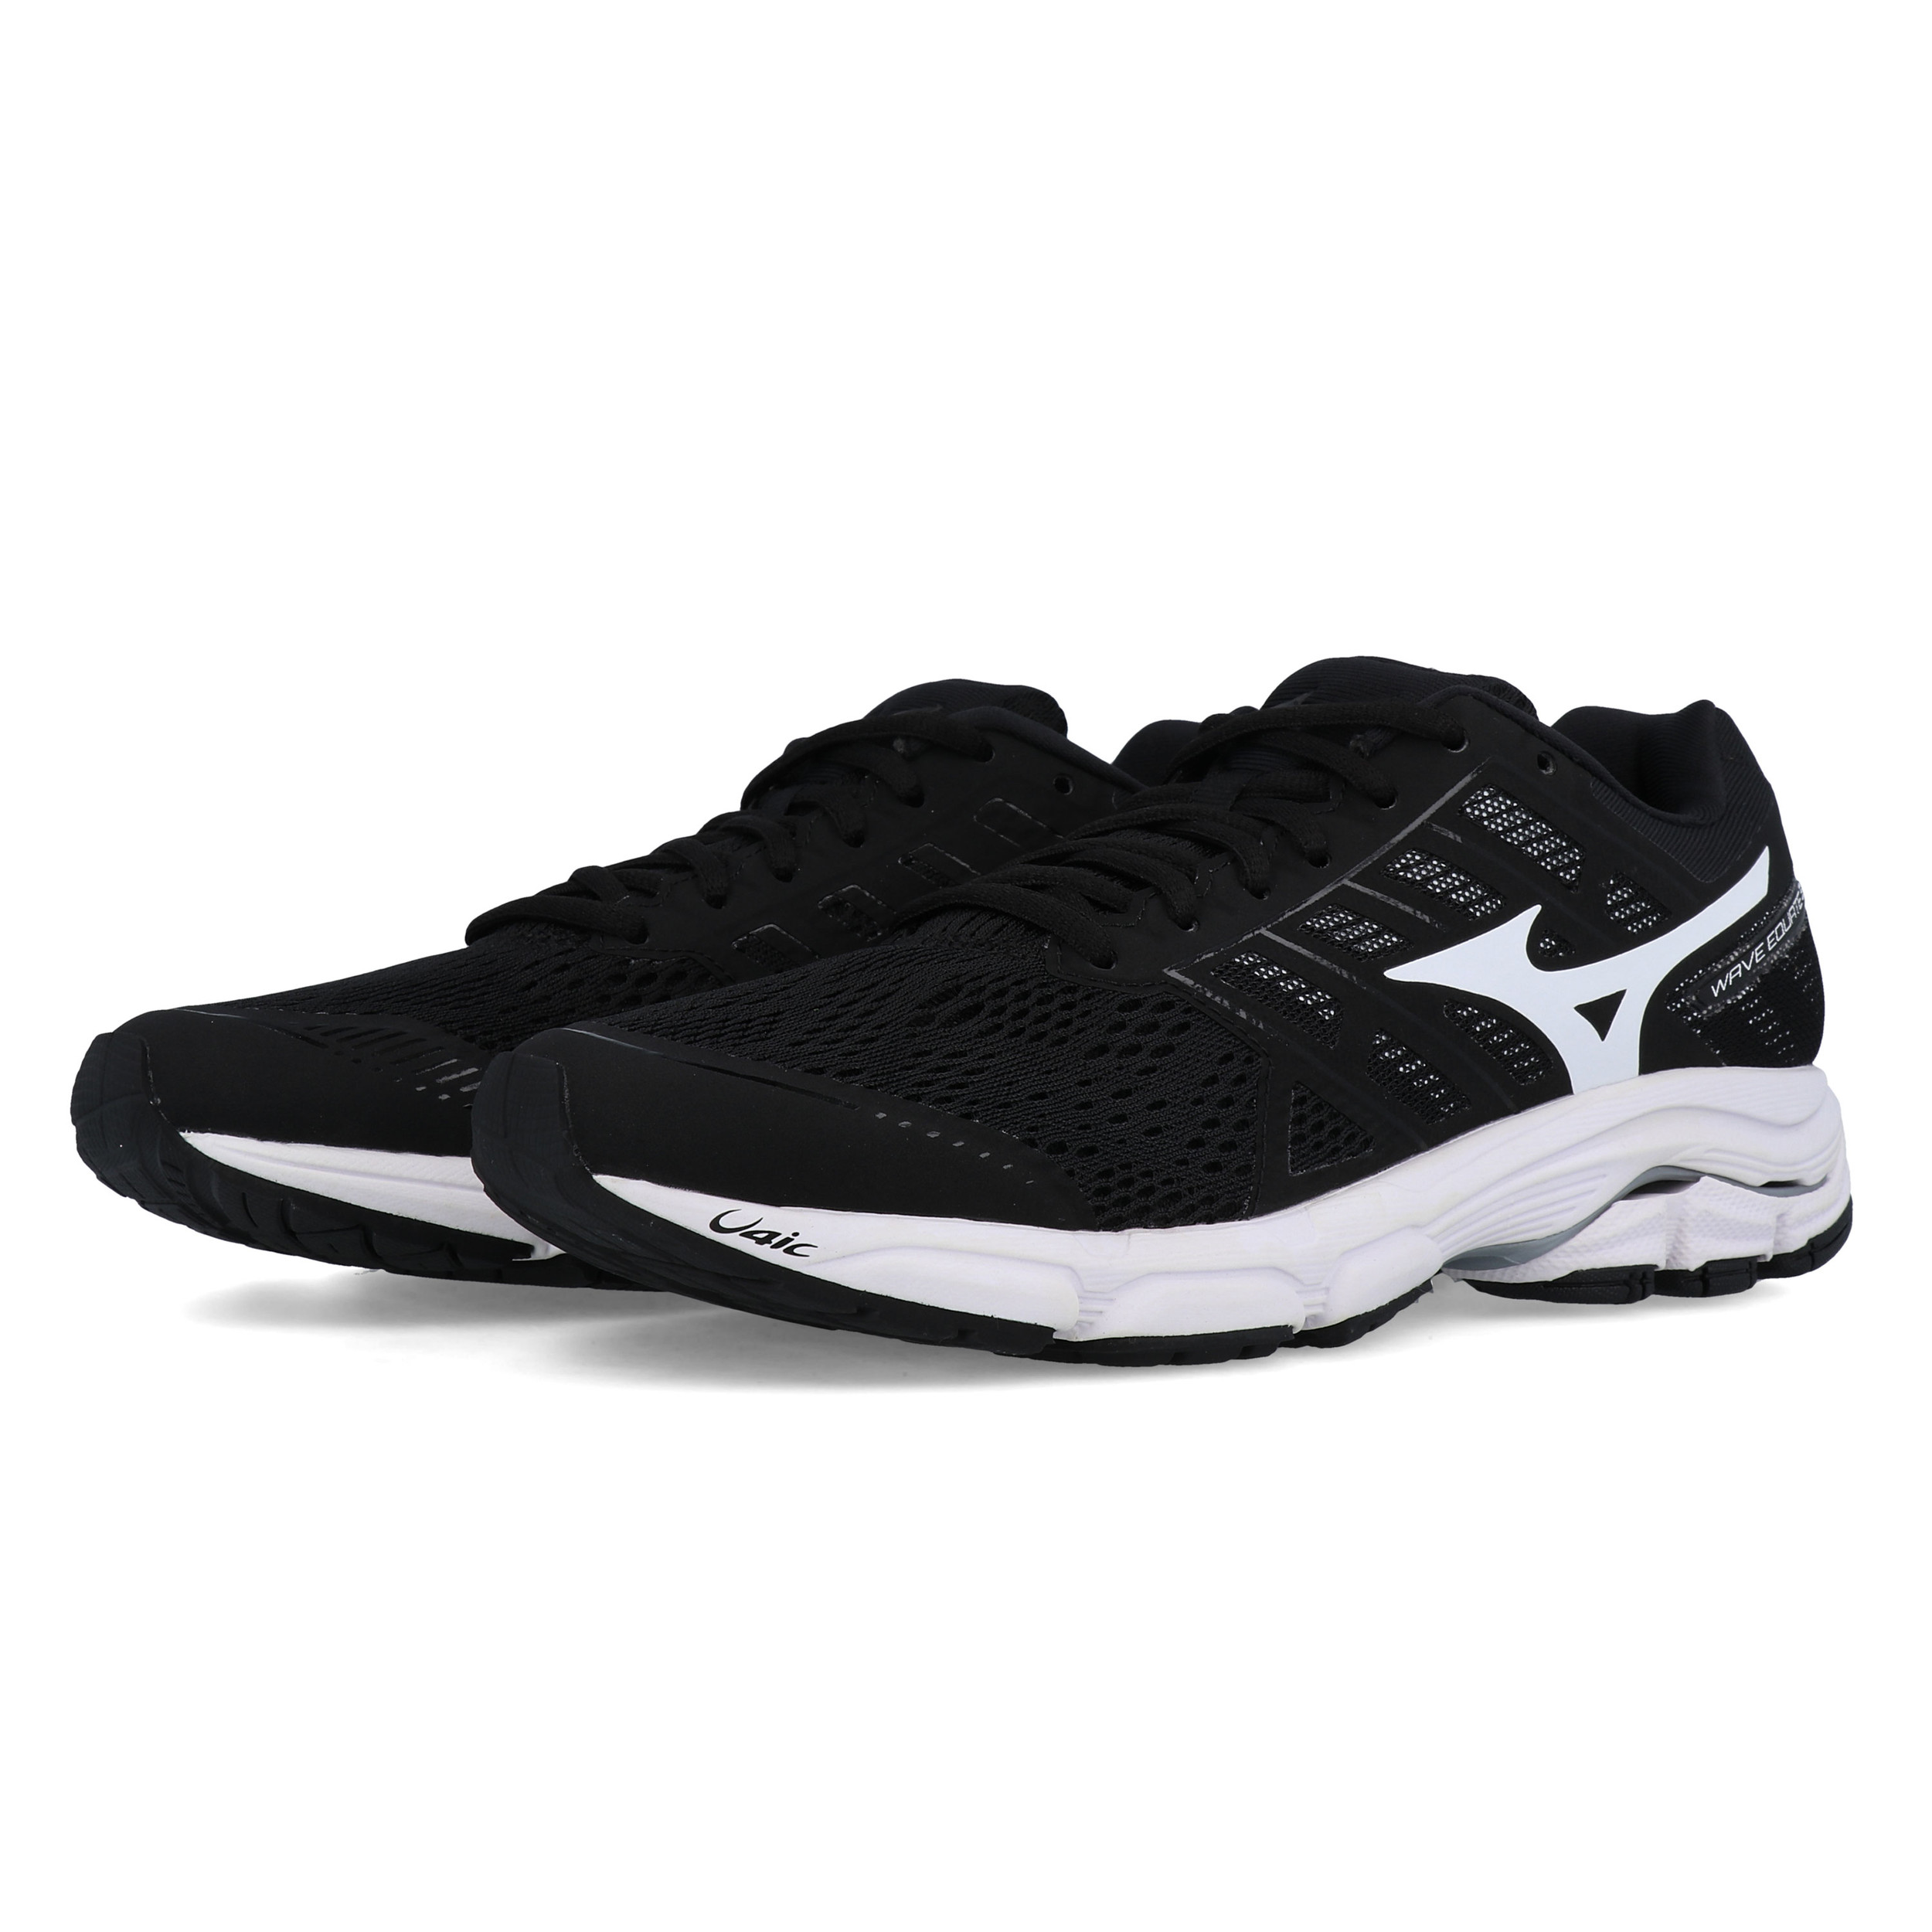 Mizuno Wave Equate 3 Women's Running Shoes